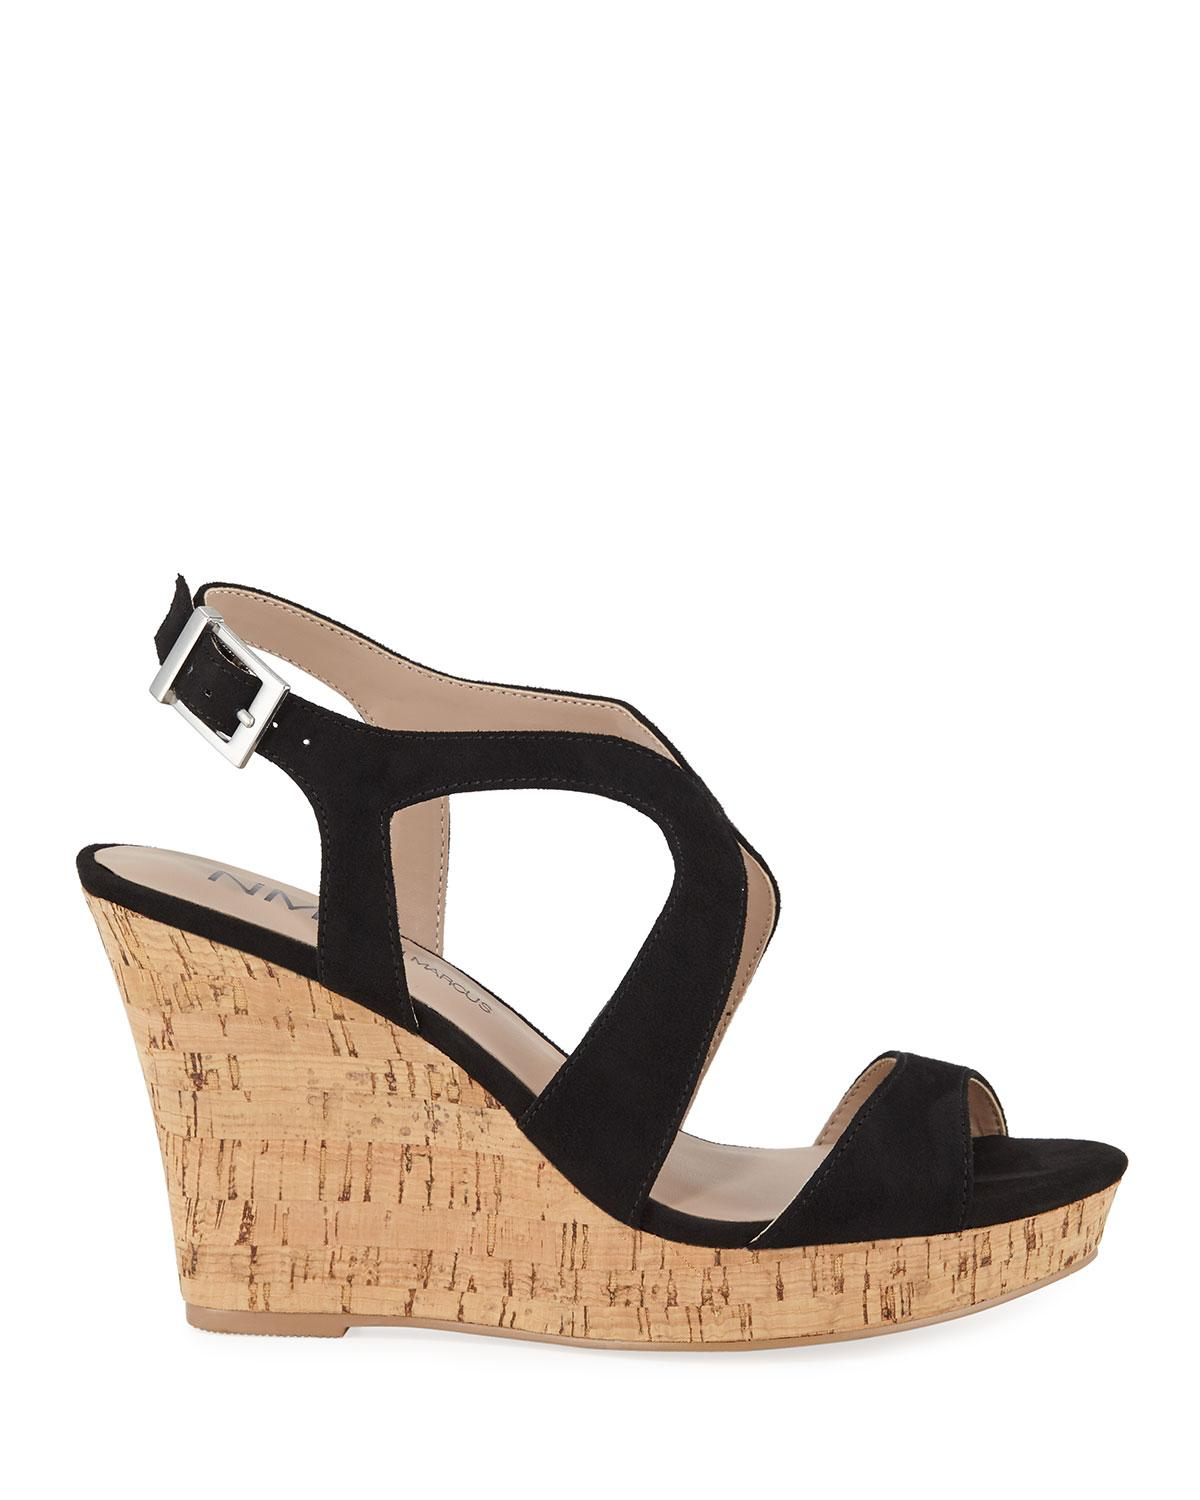 b45142a7d126 Lyst - Neiman Marcus Layton Cork Wedge Sandals in Black